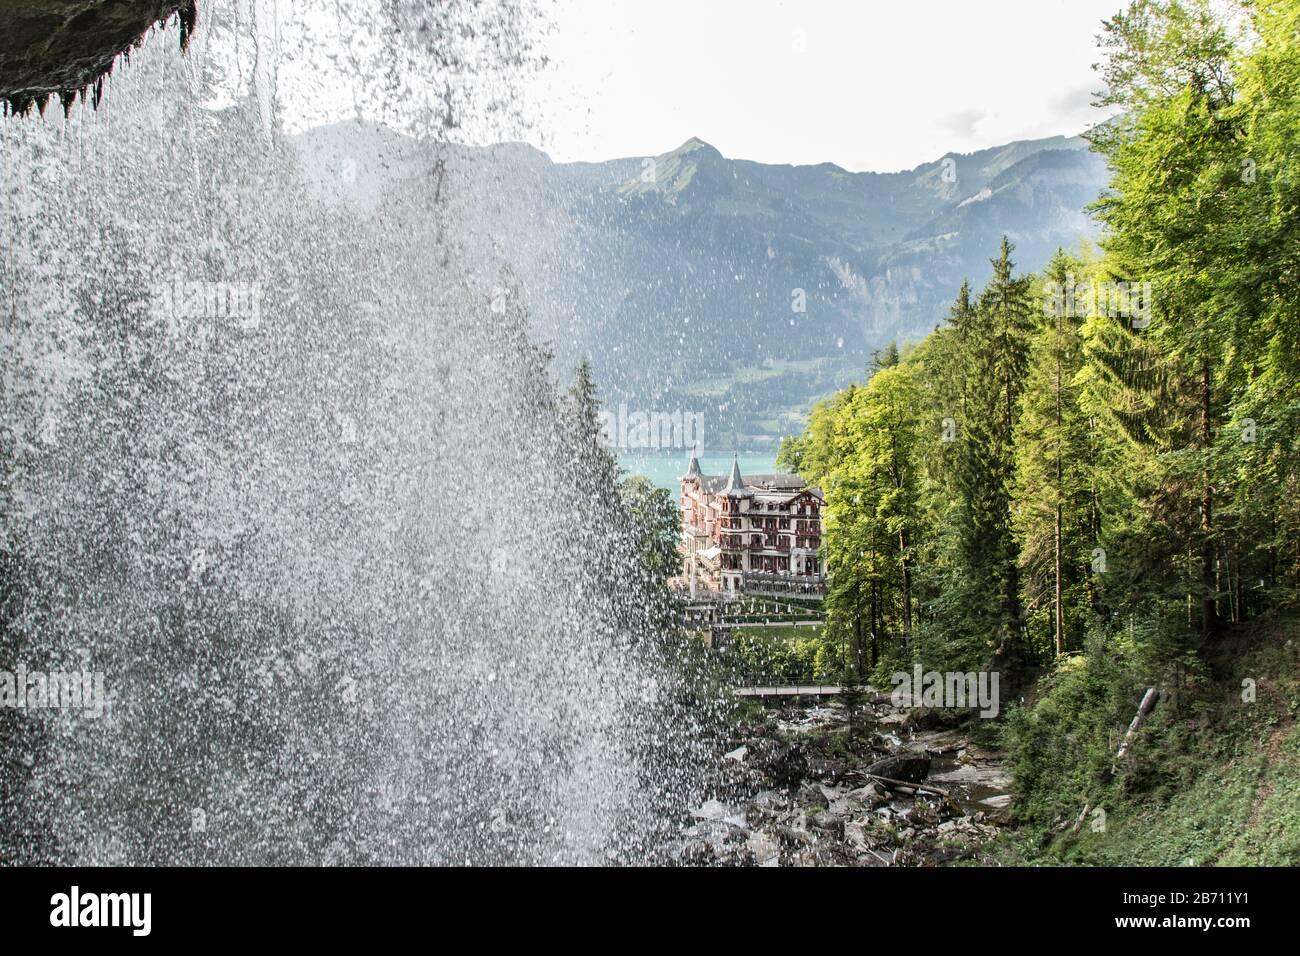 Giessbach waterfall in Switzerland Stock Photo